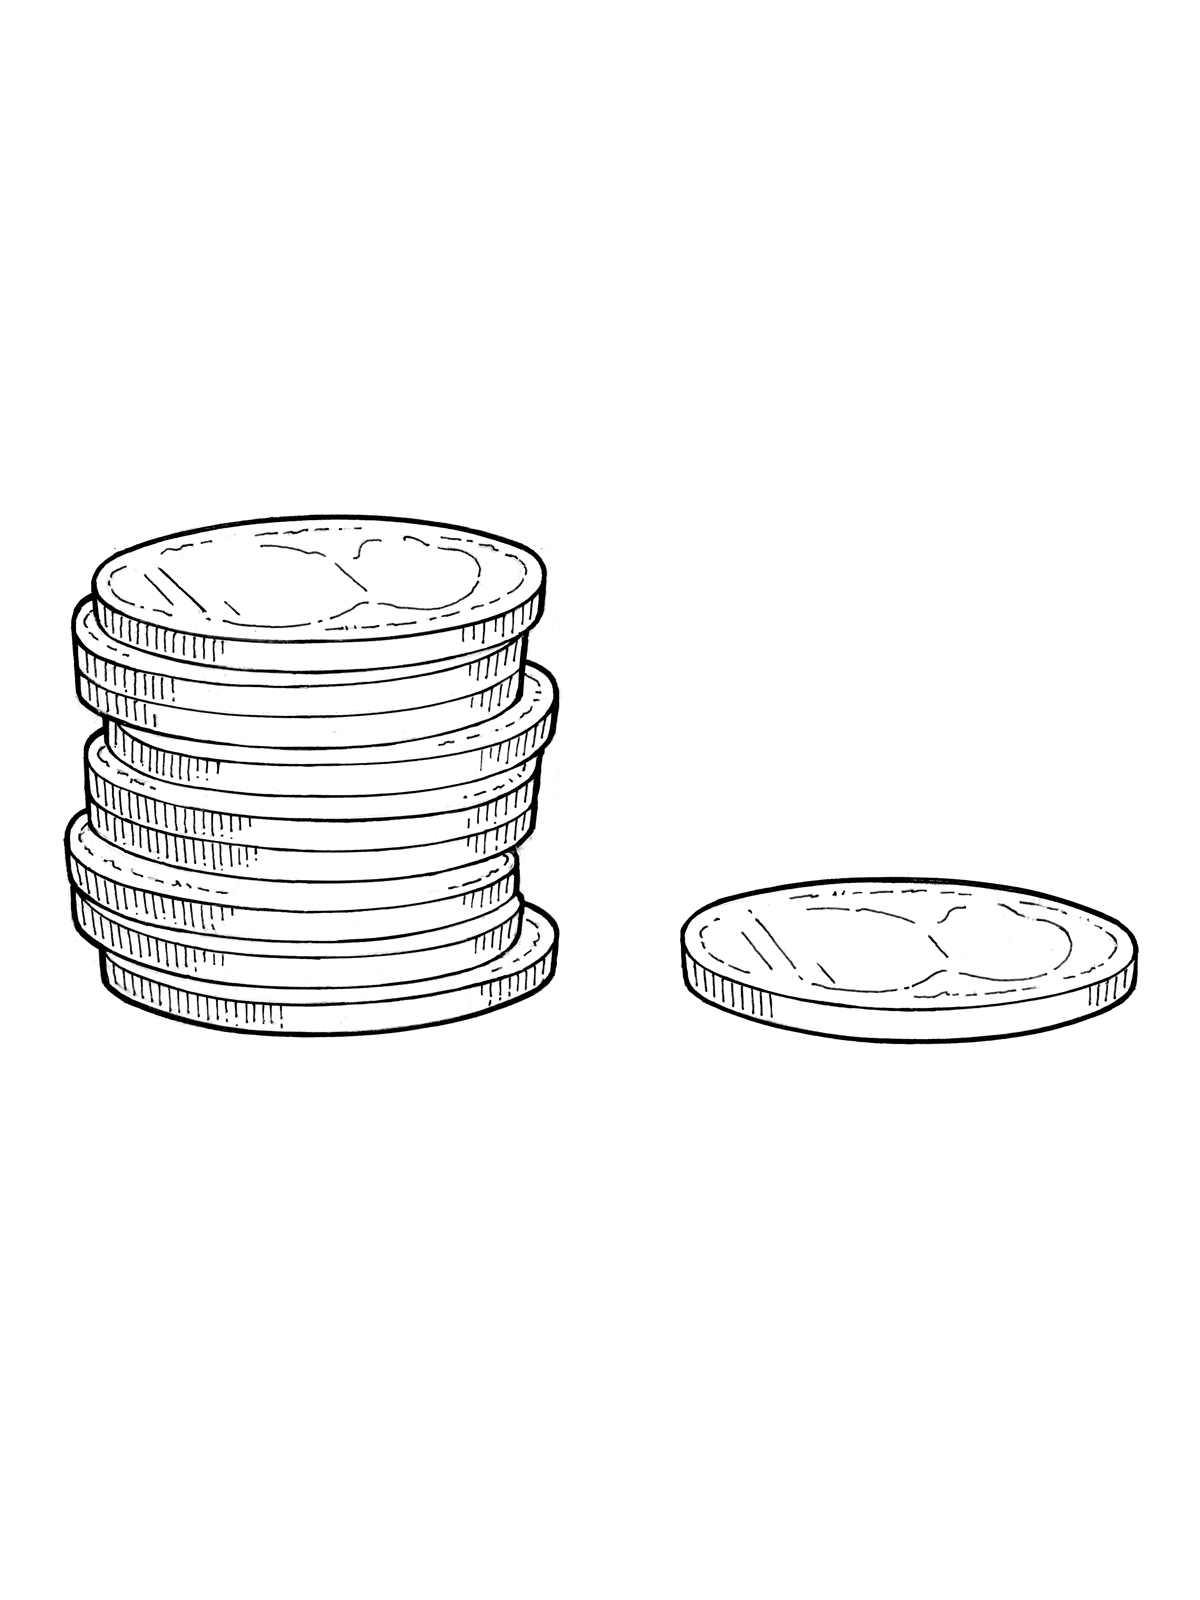 Free Tithing Cliparts, Download Free Clip Art, Free Clip Art.